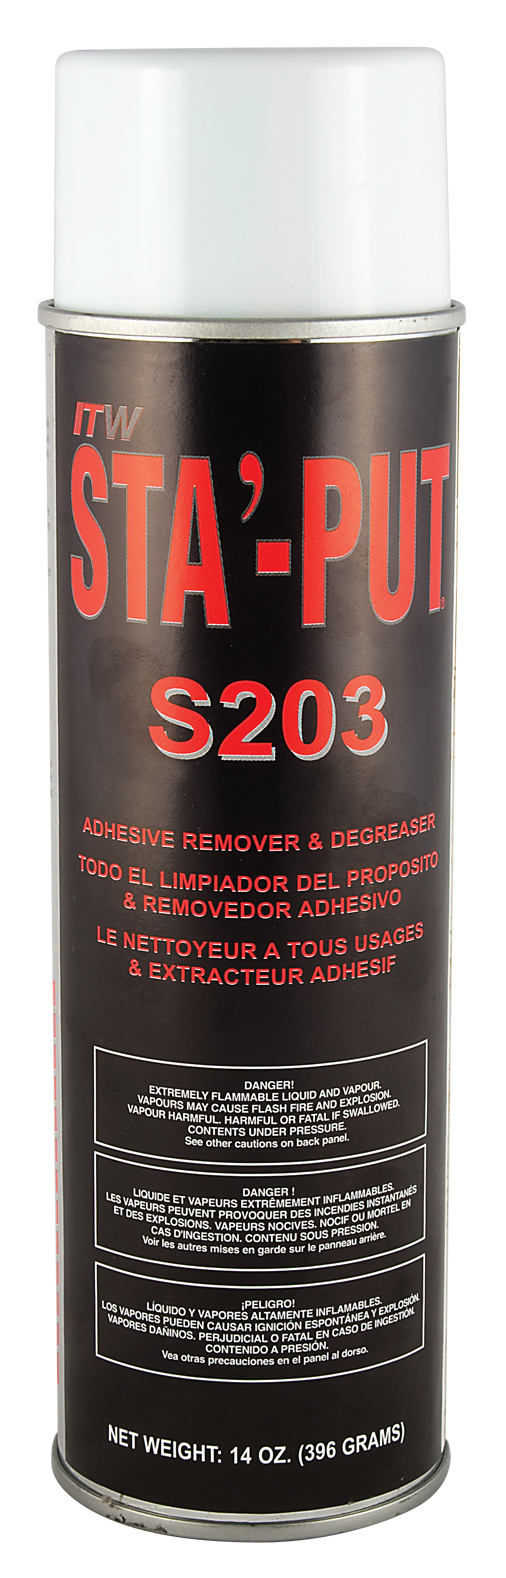 001-S203 AP Products Adhesive Remover Used To Remove Adhesives,